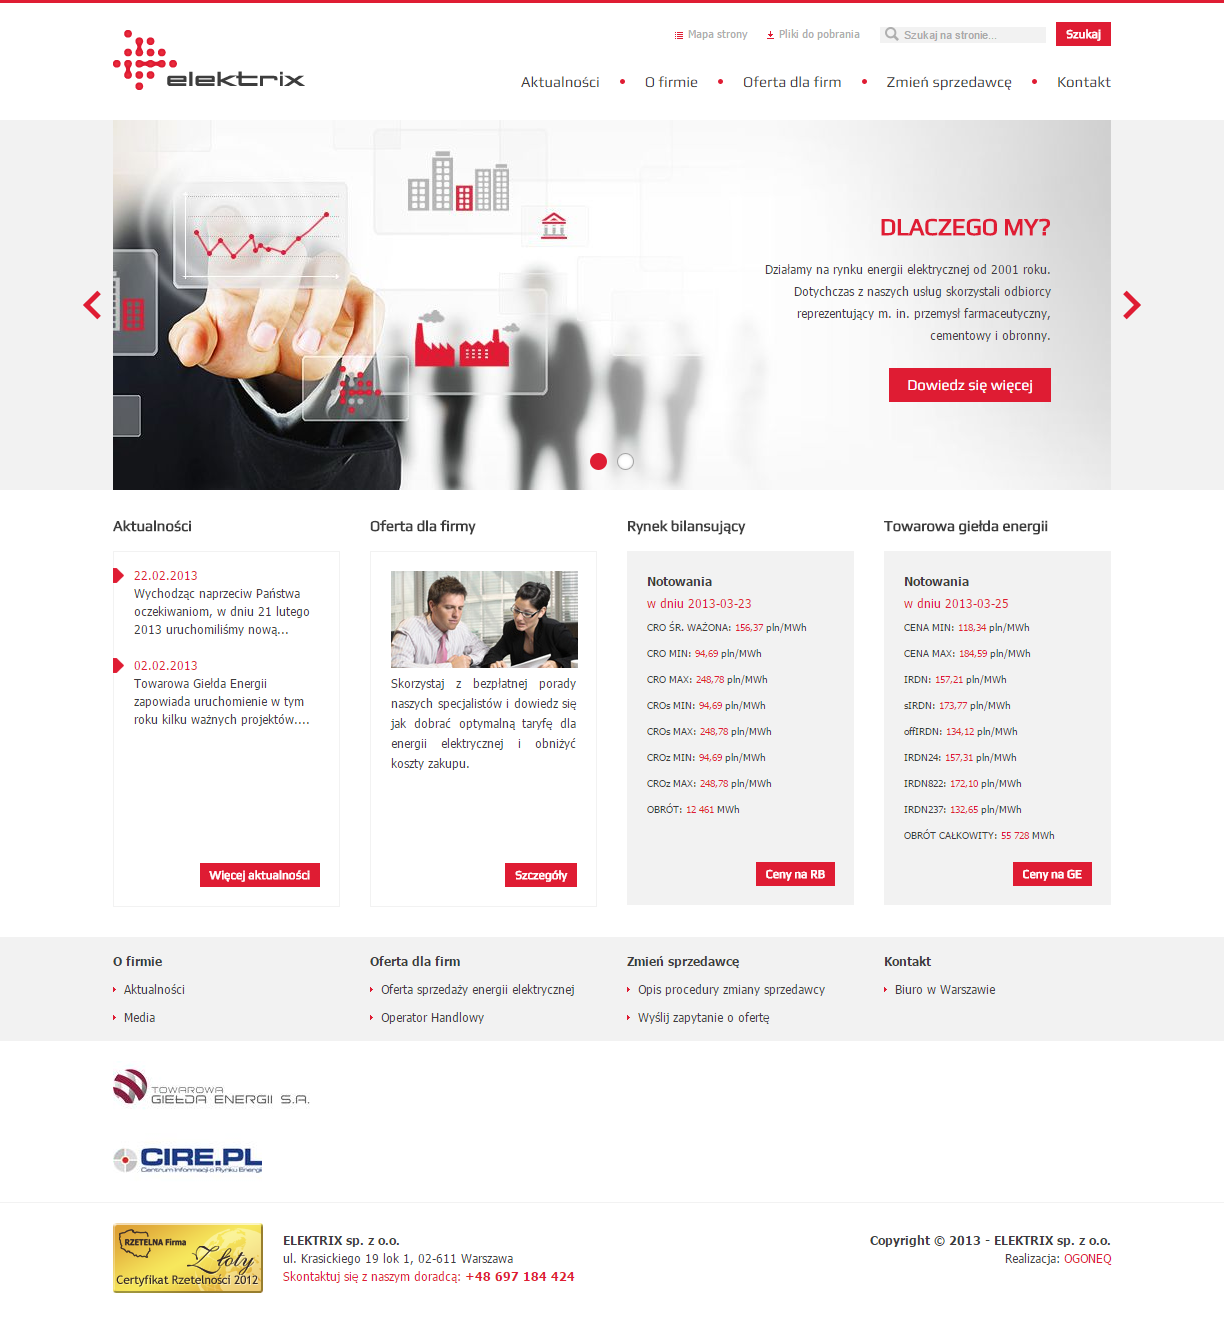 Home page (2013)